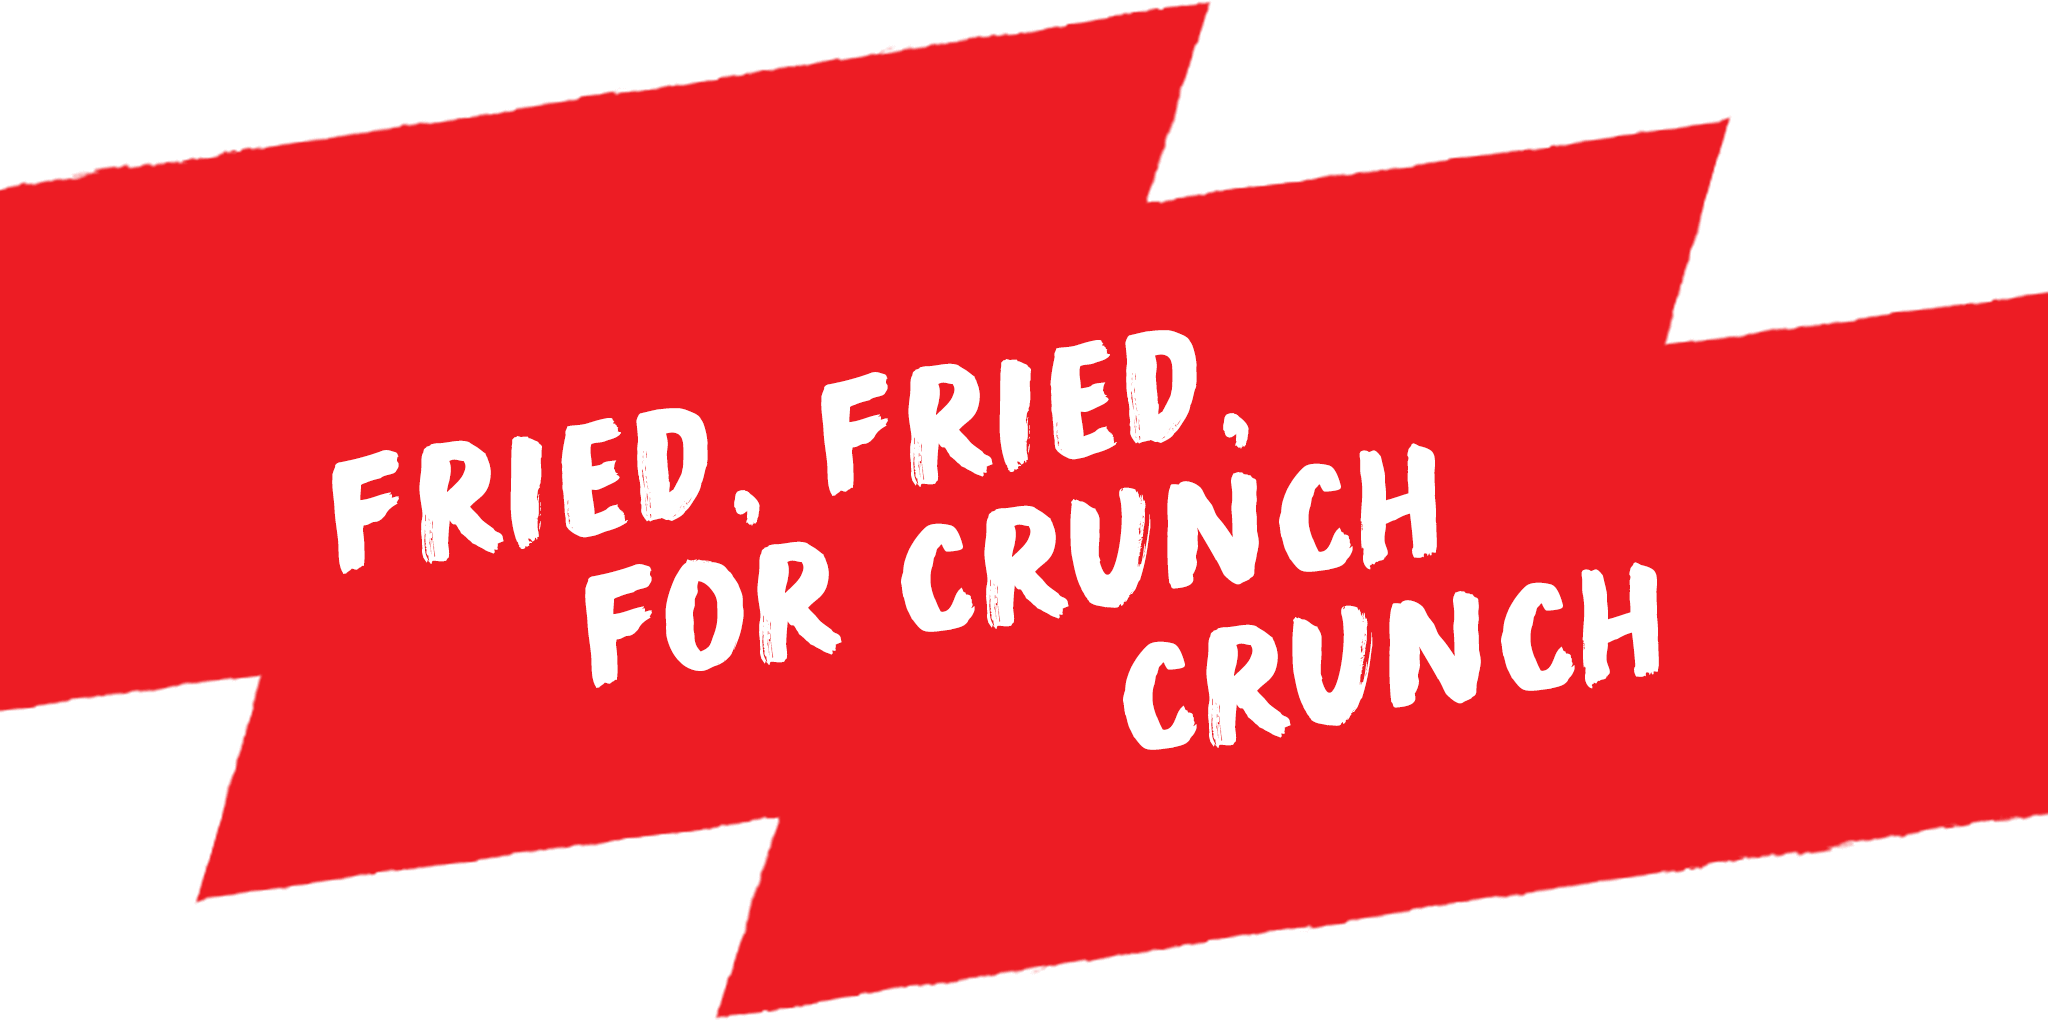 Fried, fried, for crunch crunch